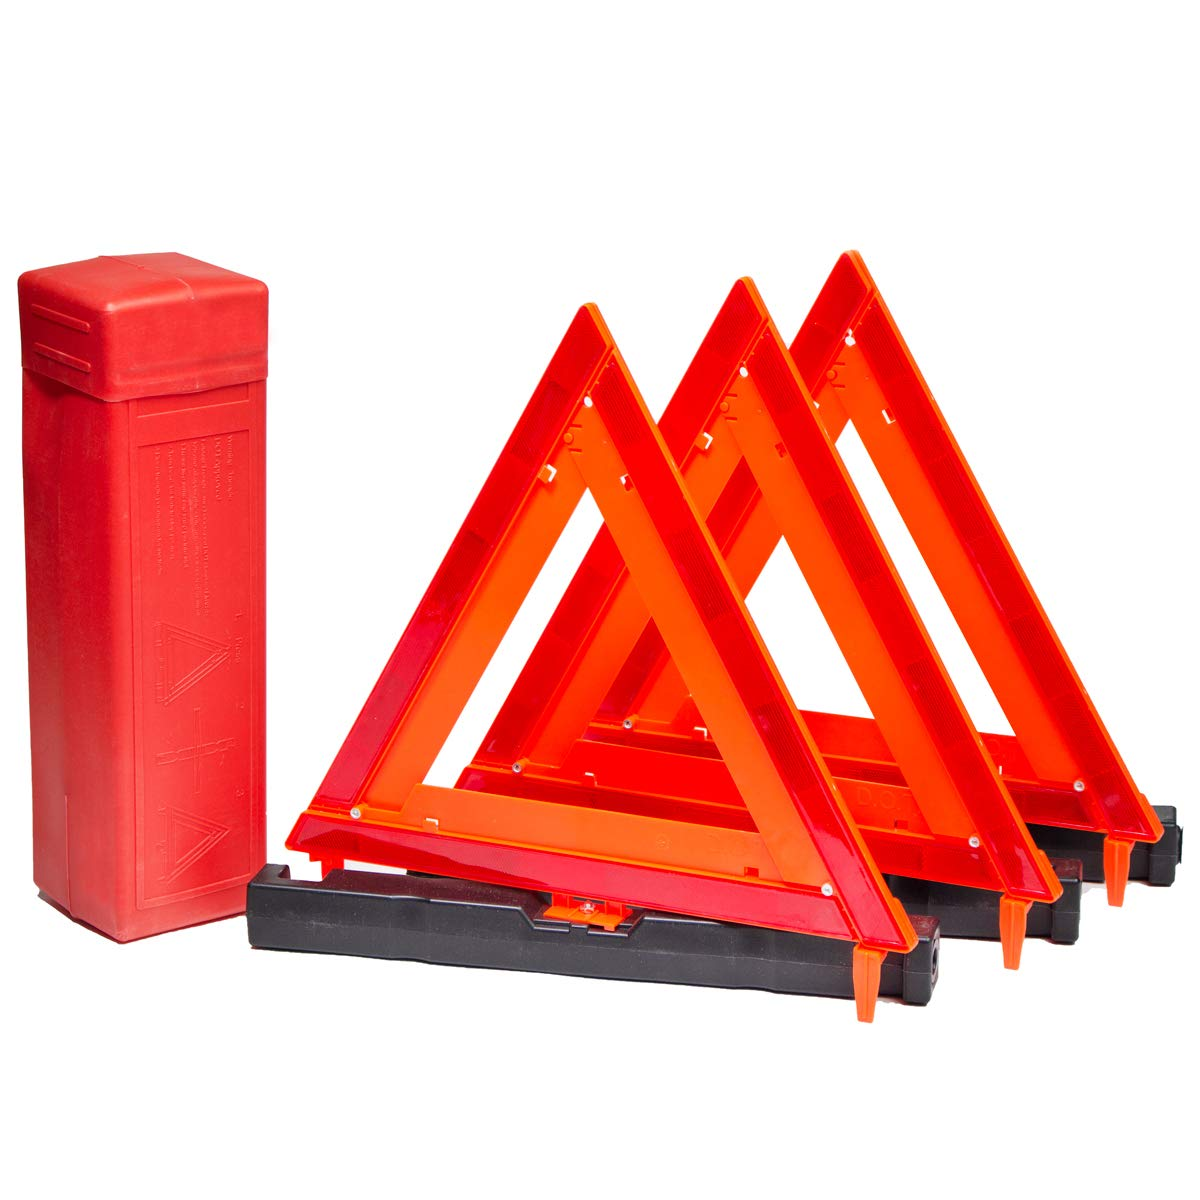 SpeedTech Lights 3 Pack Triangular Collapsible Traffic Safety Reflector for Roadside Safety Products & Equipment - Foldable Triangle Cone - Reflective Warning Road Safety Triangle Kit